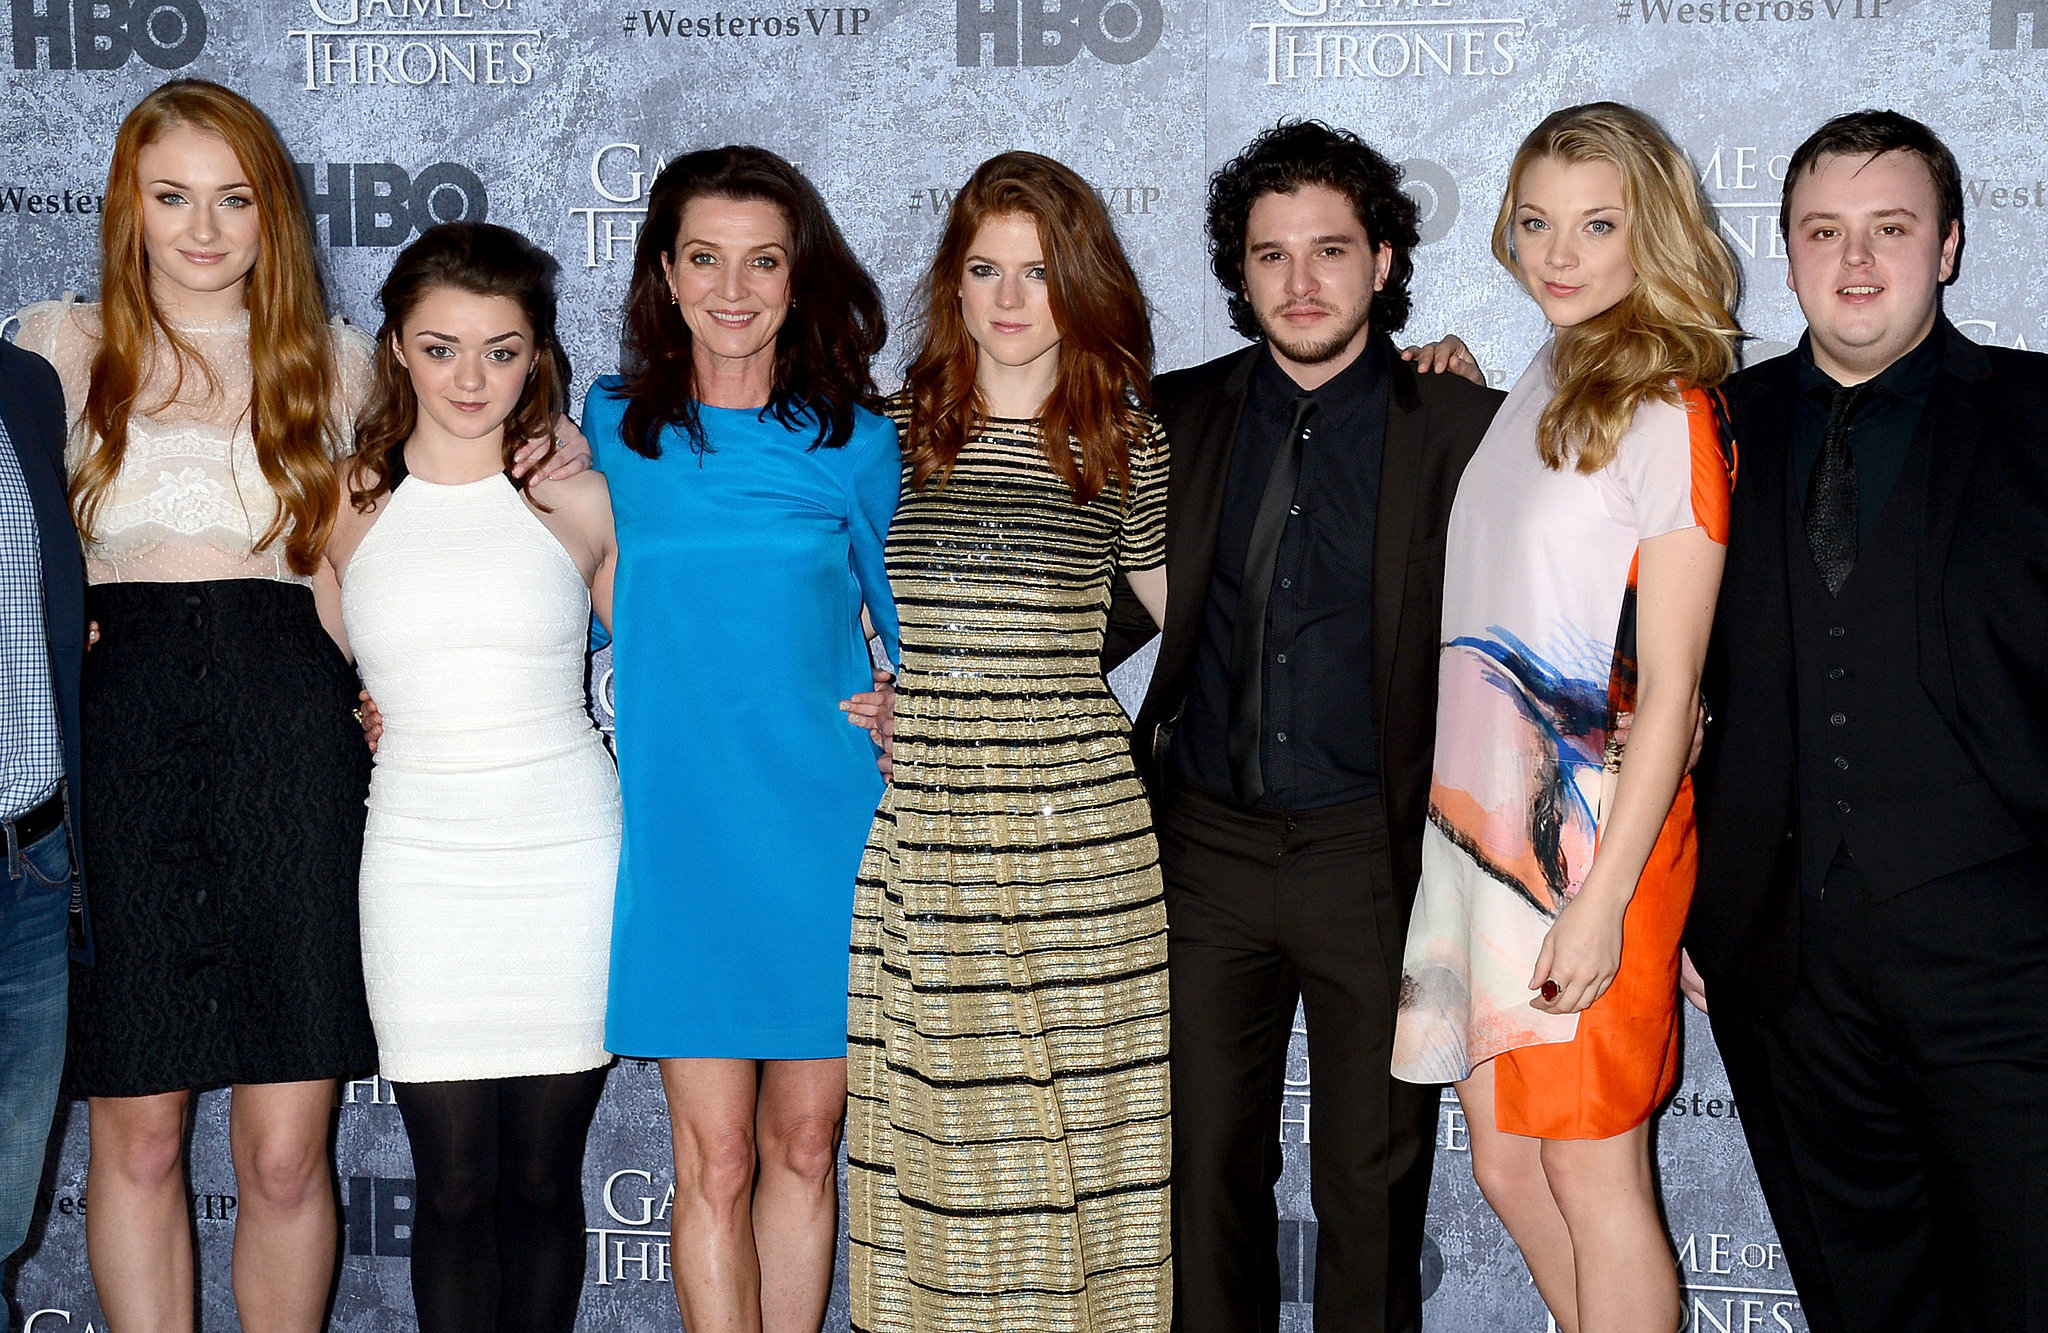 It All Started in 2013 at the Season-Three Premiere in San Francisco